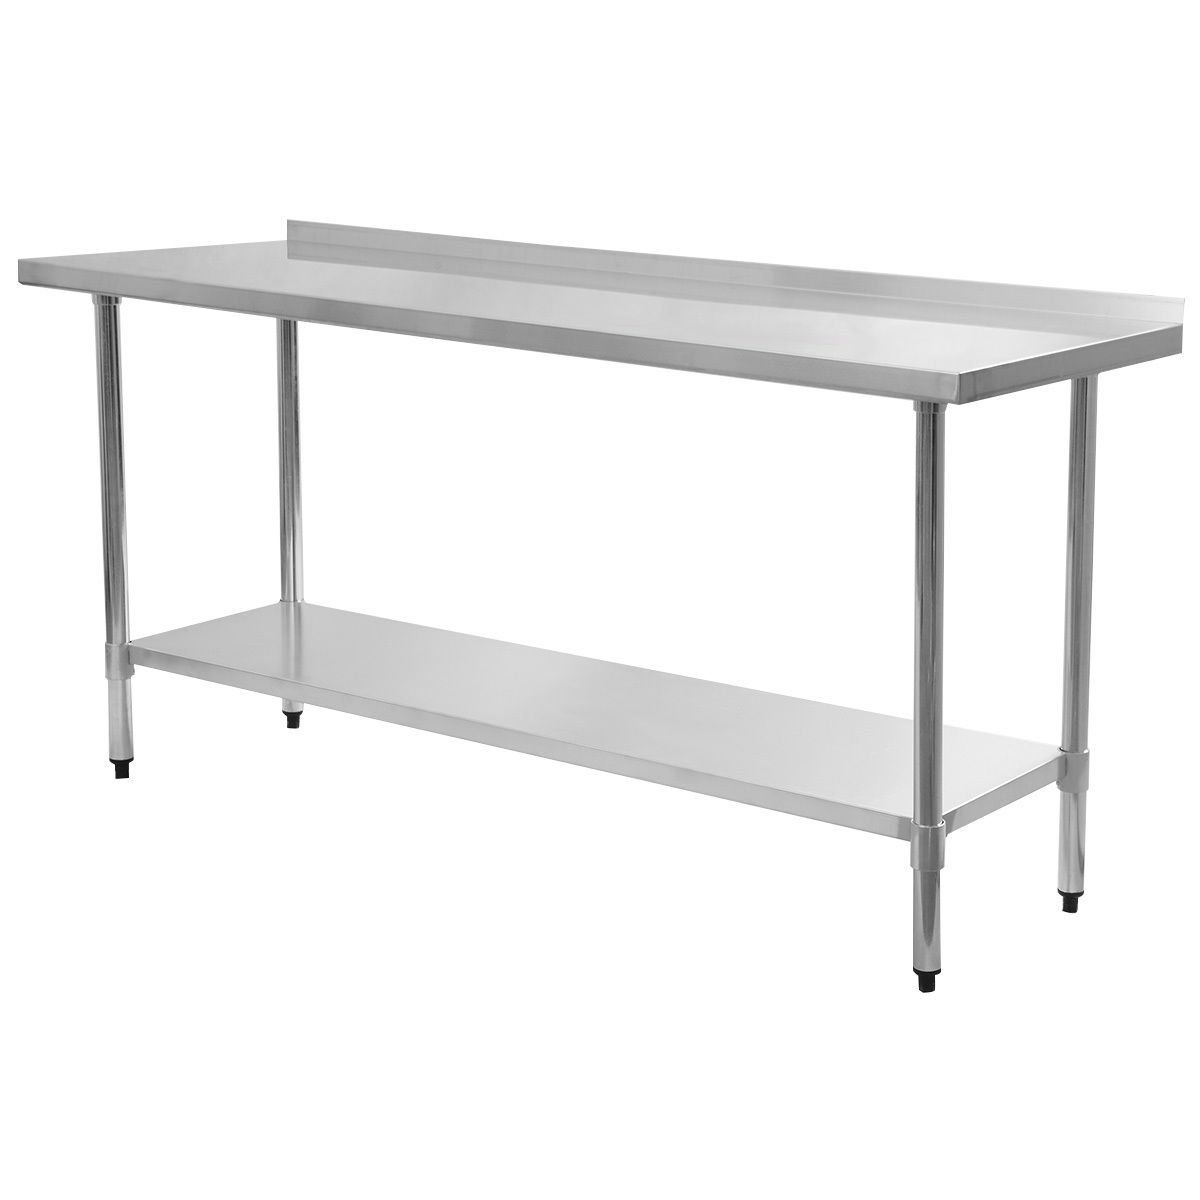 Restaurant Kitchen Backsplash giantex stainless steel work prep table with backsplash kitchen